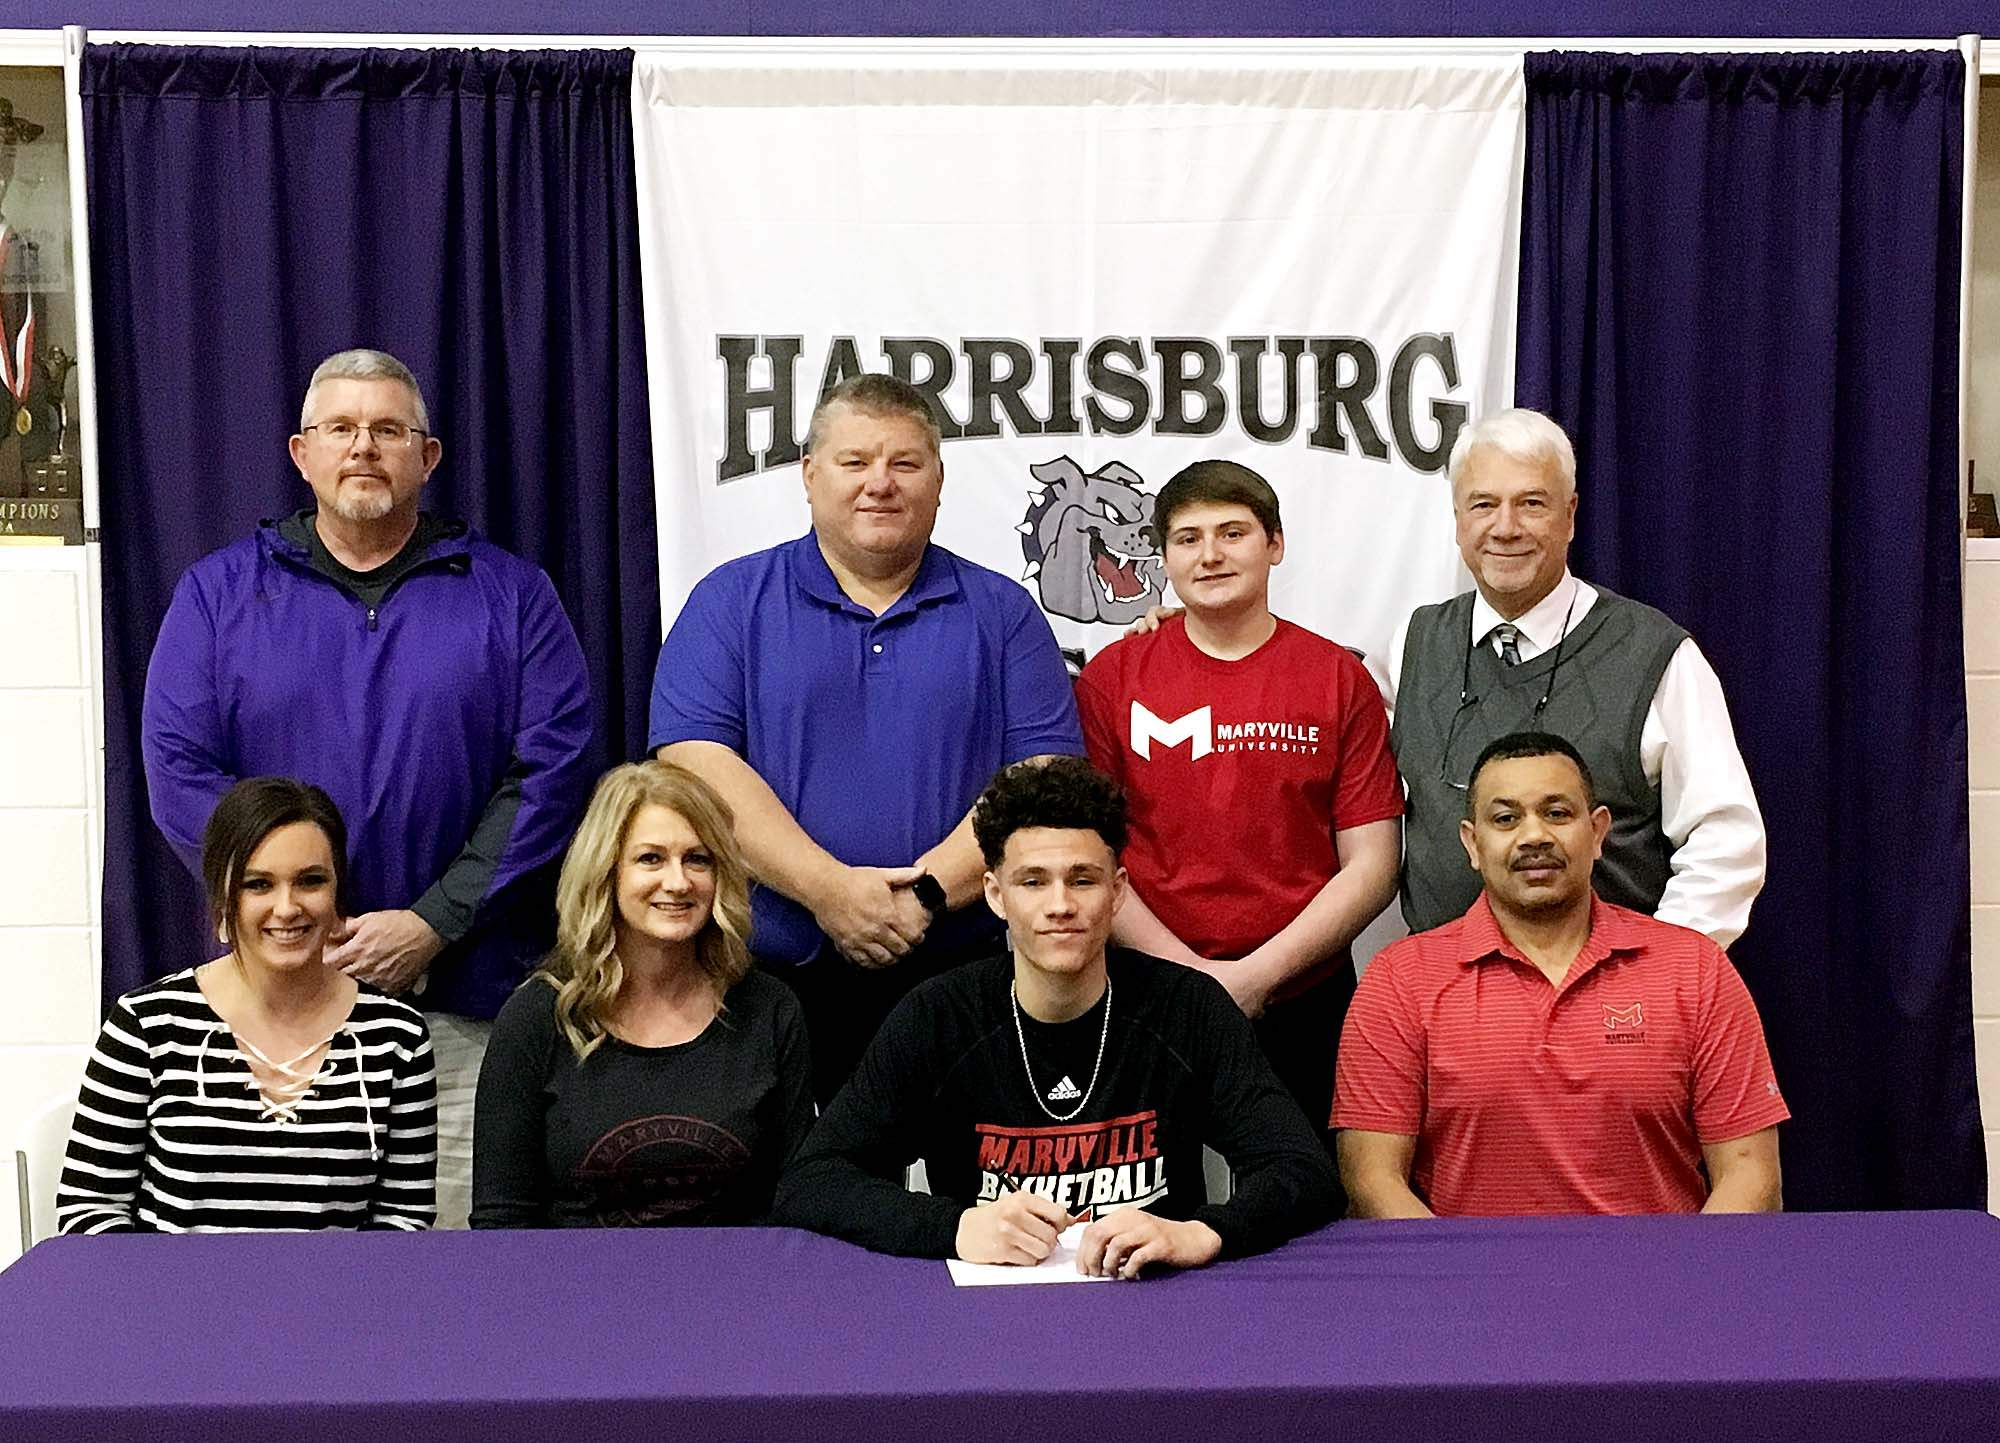 Harrisburg's Isaiah Saulsberry recently signed a National Letter Of Intent to play basketball at Maryville University. Joining Saulsberry at his signing were (front row, from left) Tierra Jones (sister), Joni Saulsberry (Mother), Saulsbery and Patrick Saulsberry(Father). Back row, from left, Greg Langley (athletic director), Richard Dwyer (HHS assistant coach), Jase Leinenbach and Randy Smithpeters (HHS head coach).